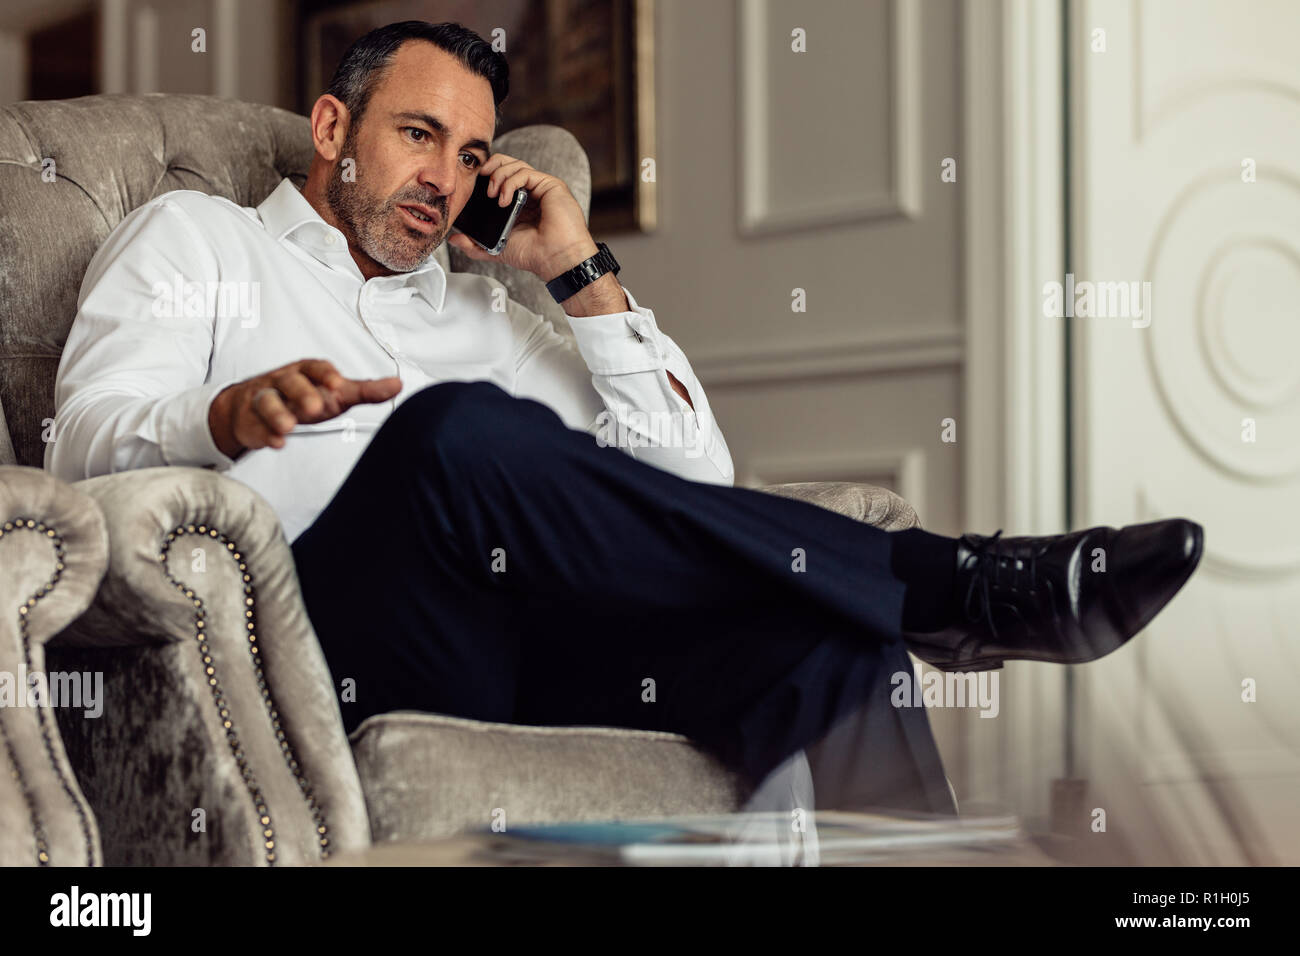 Mature traveler businessman wearing white shirt making call after arriving in the hotel room. Traveler sitting on couch and talking on smartphone. Stock Photo